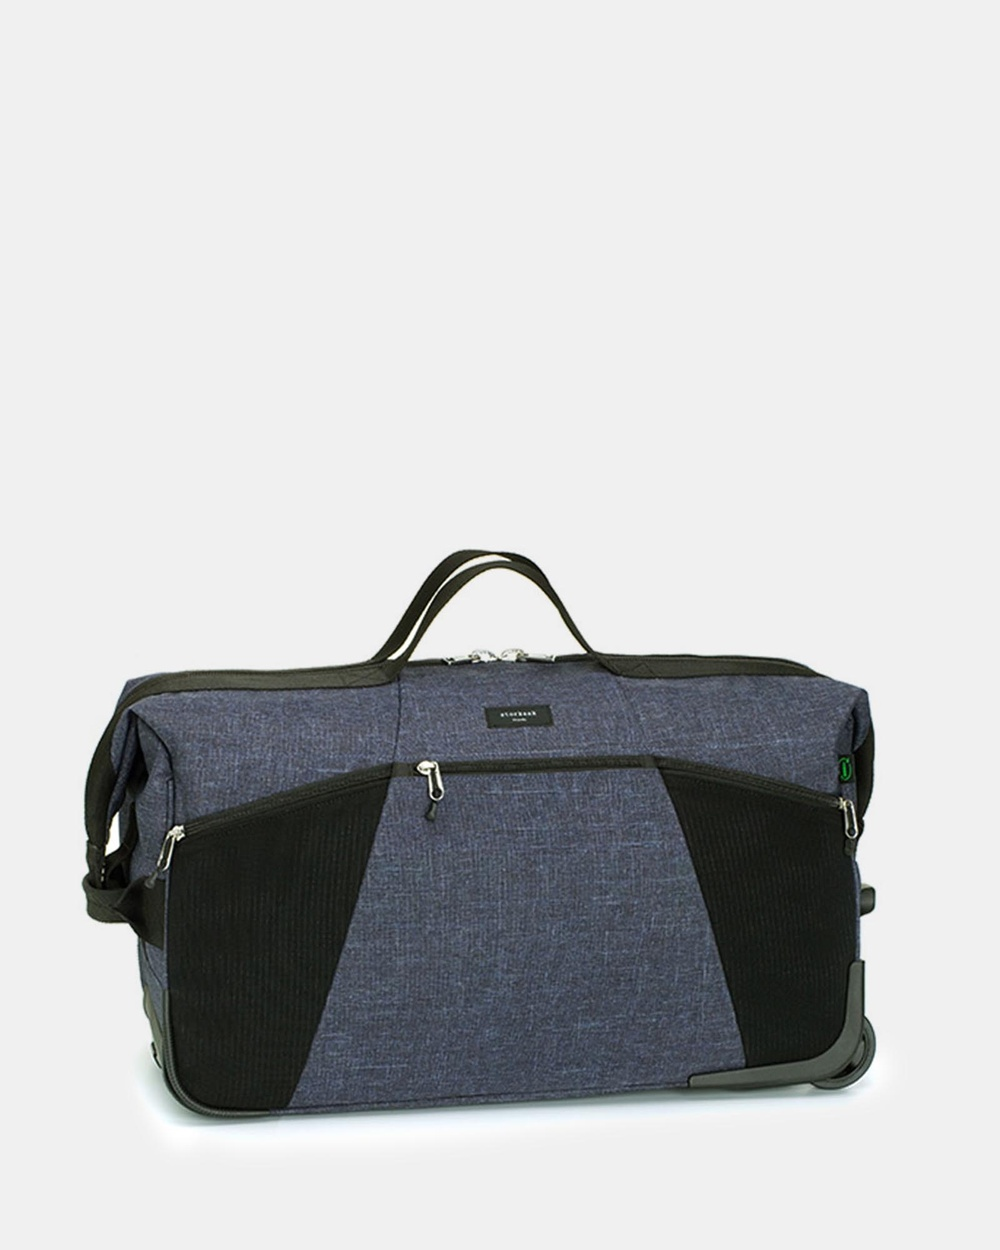 Storksak Eco Travel Cabin Carry On Bag Bags Navy Carry-On